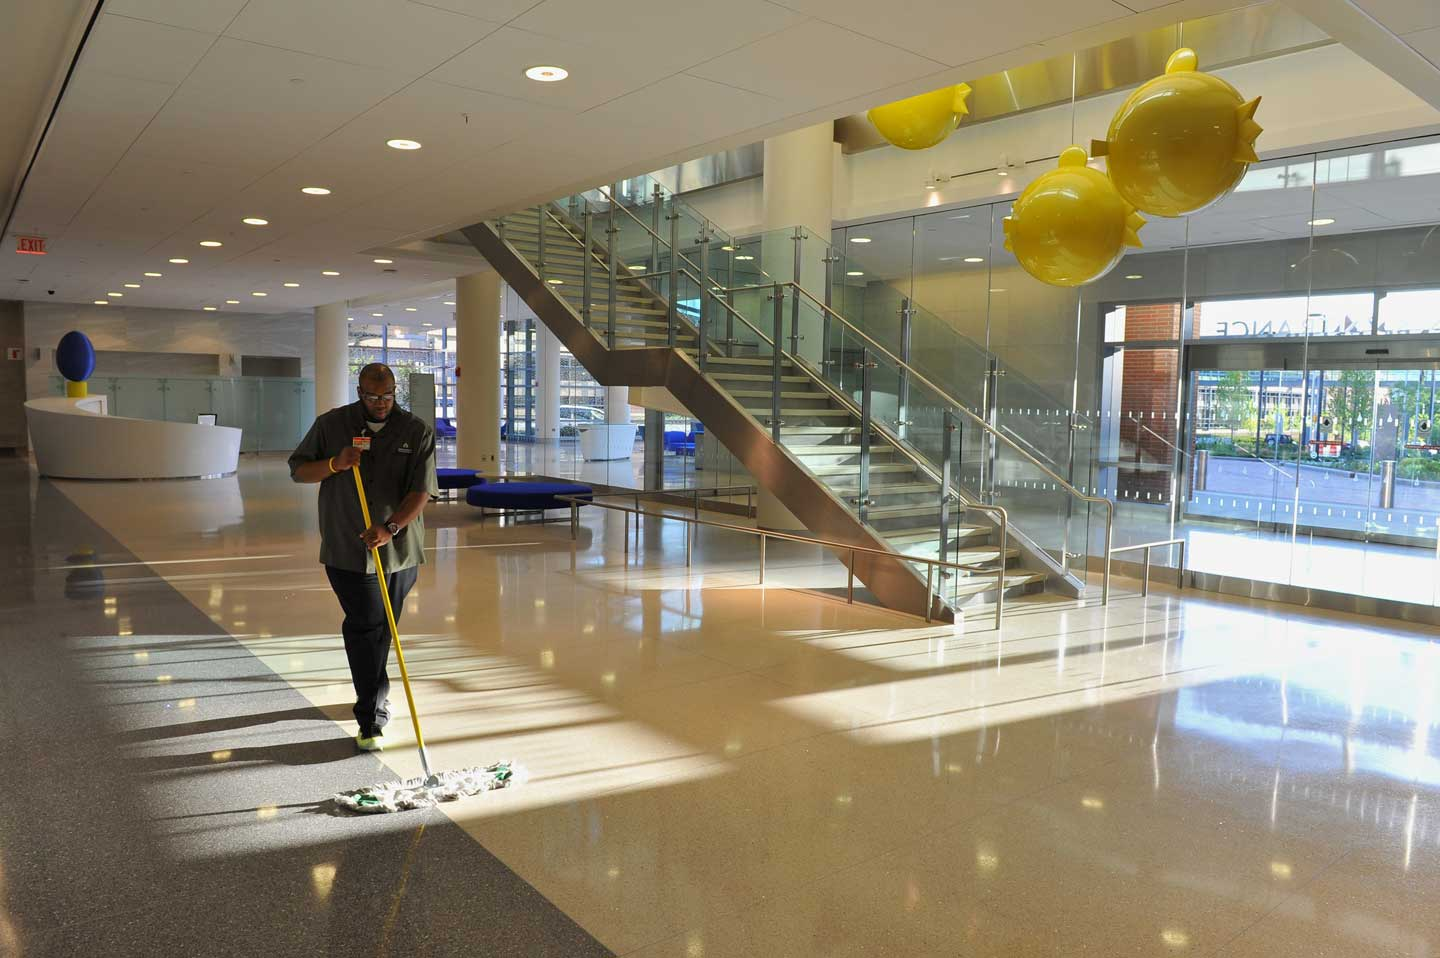 A final clean sweep by Environmental Service's Jordan Fields in the Bloomberg Children's    Center.